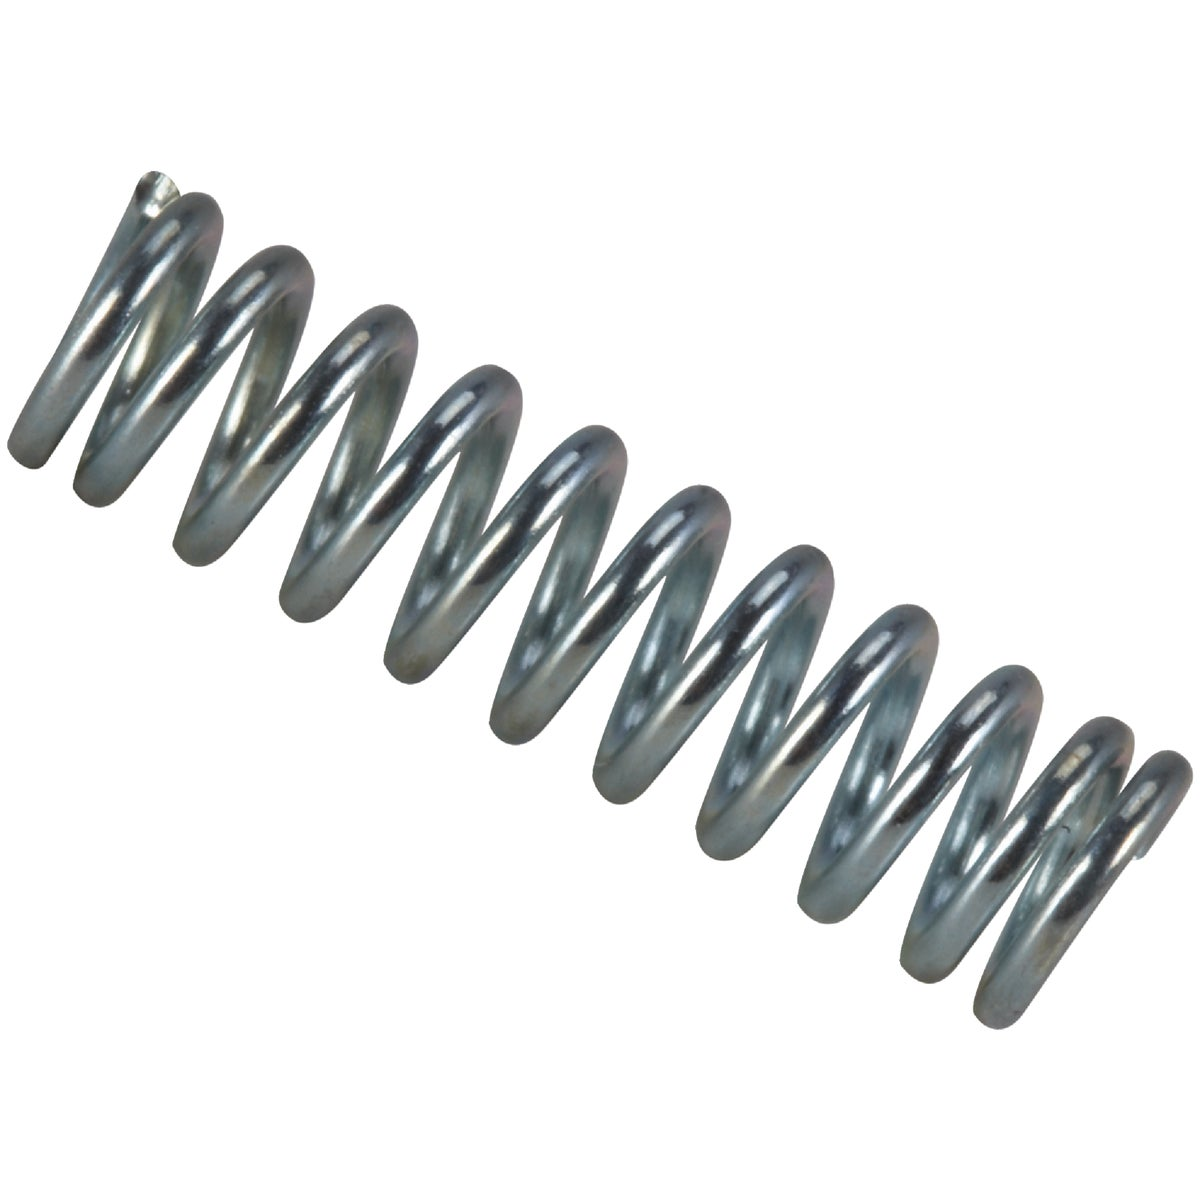 COMPRESSION SPRING - C-782 by Century Spring Corp